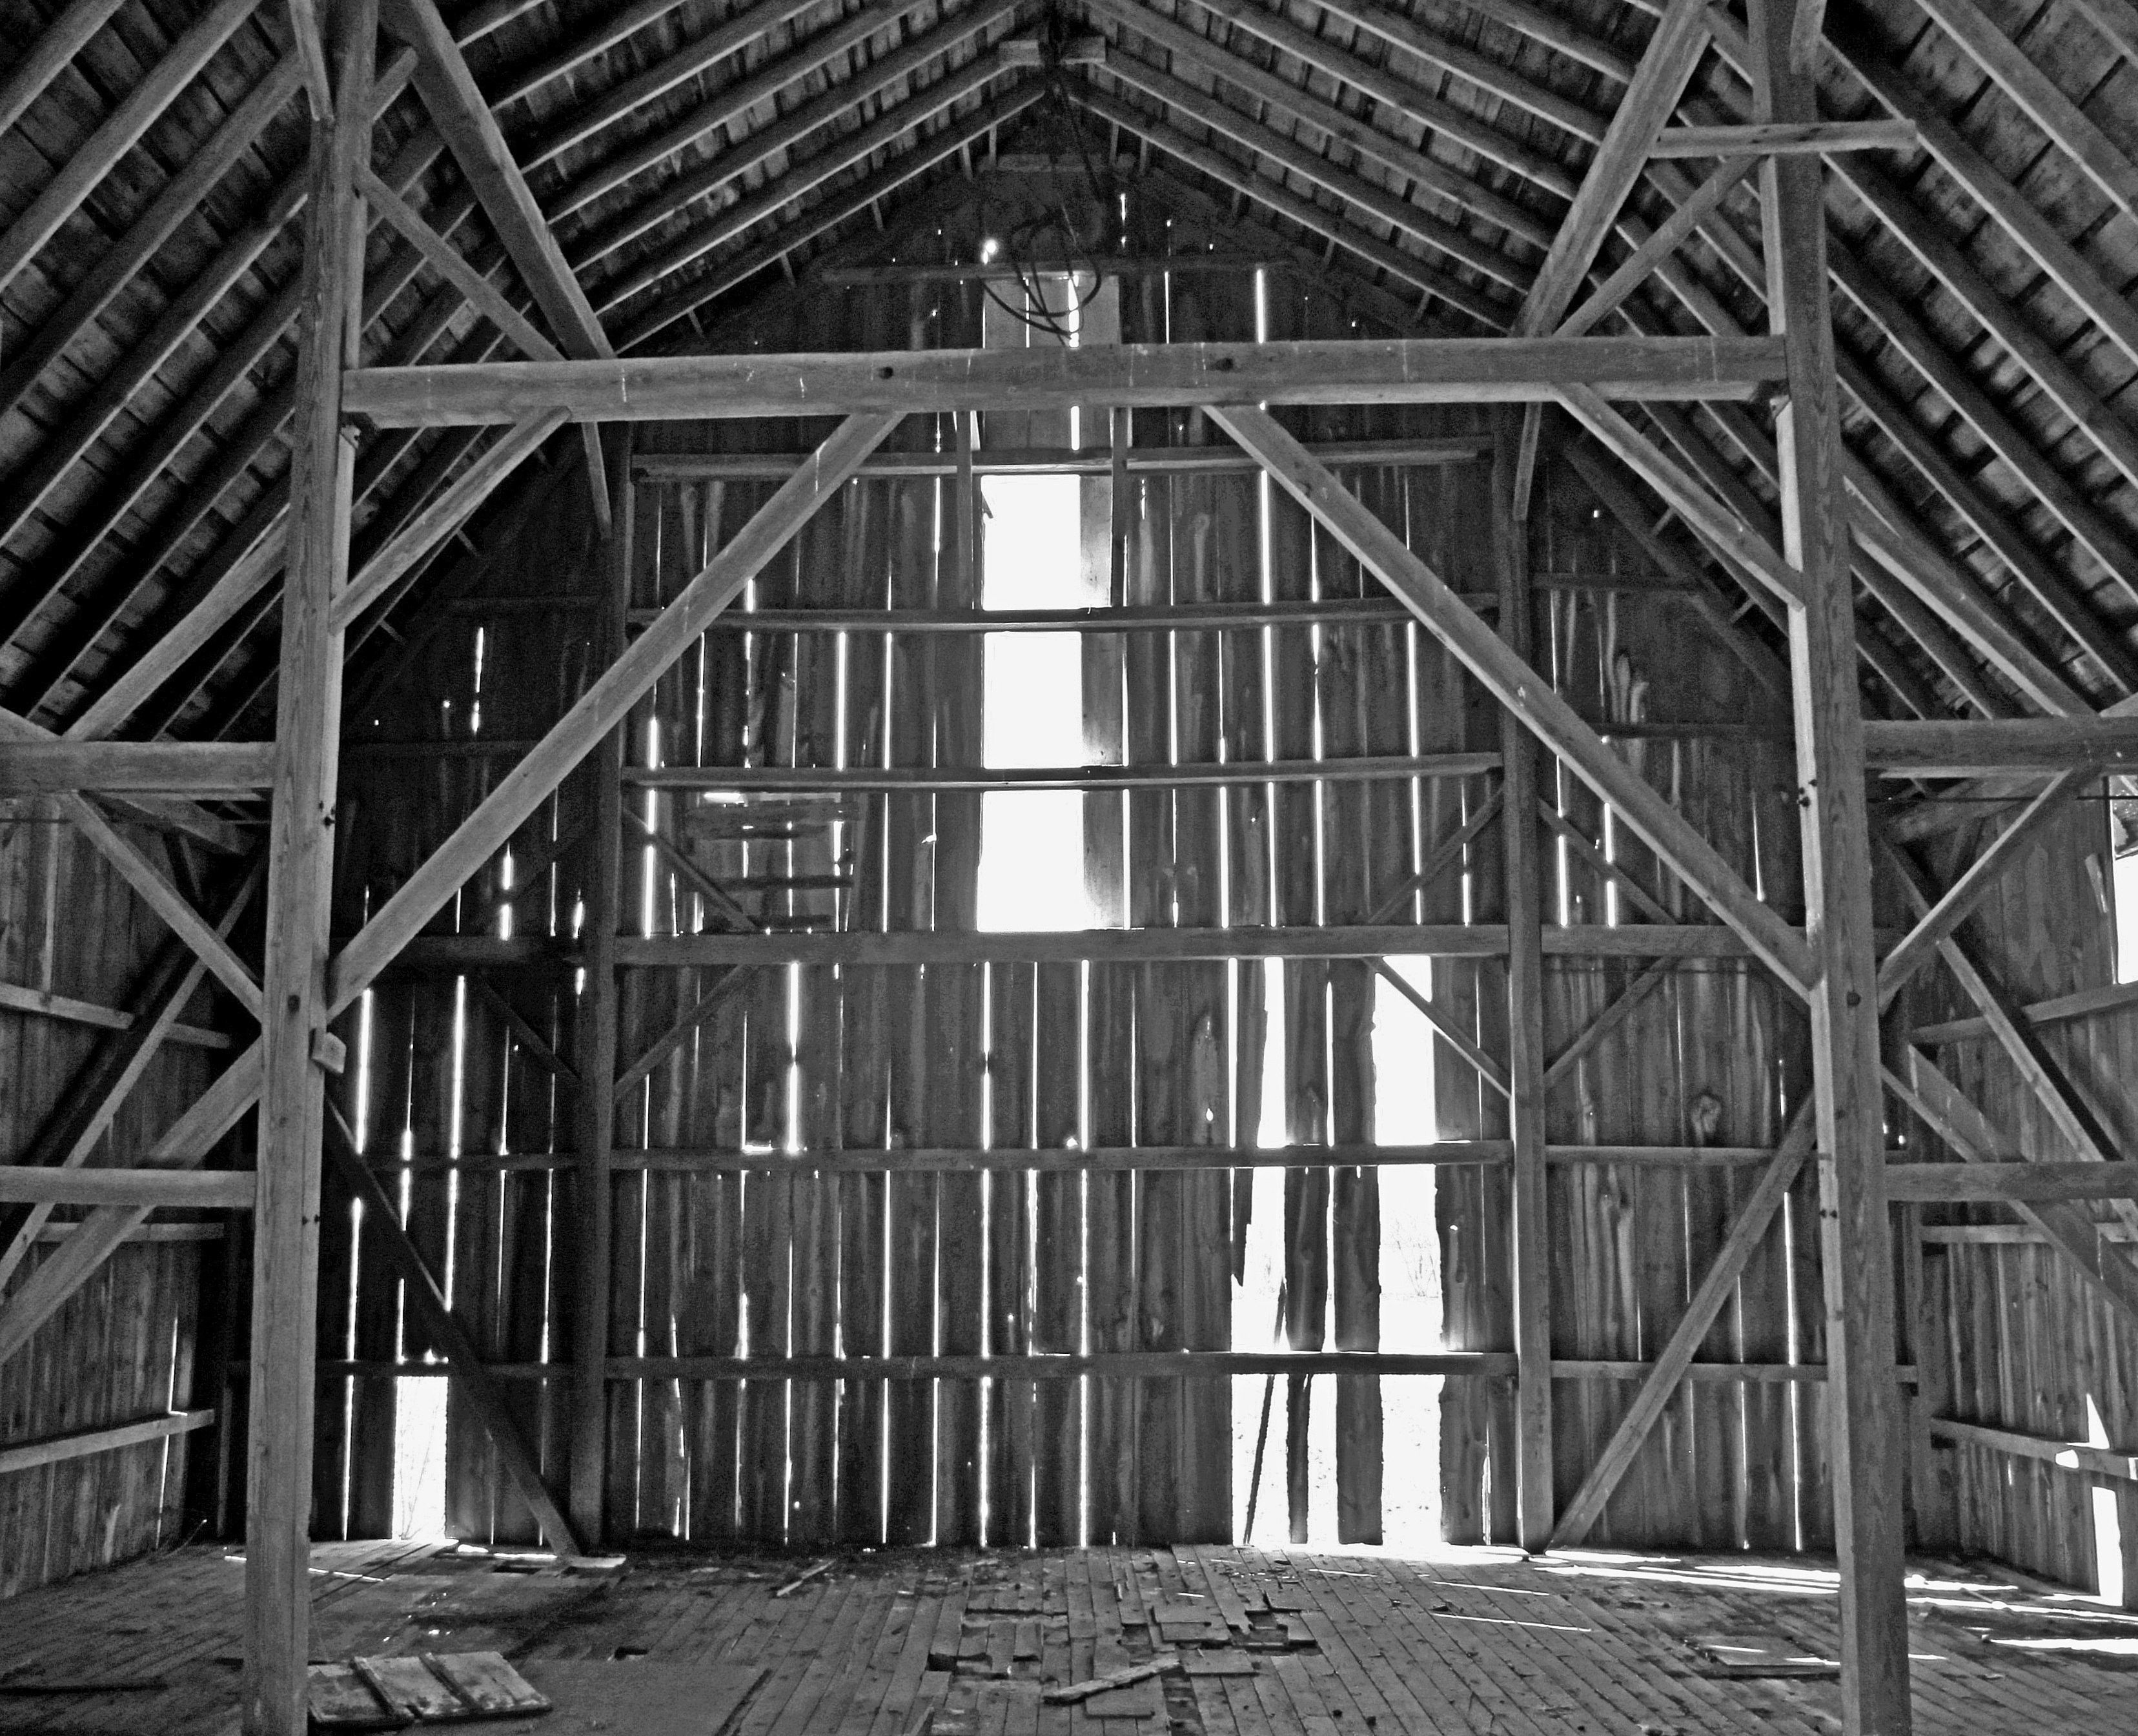 Interior Abandoned Barn There Really Are Dust Particles Dancing Around Constantly